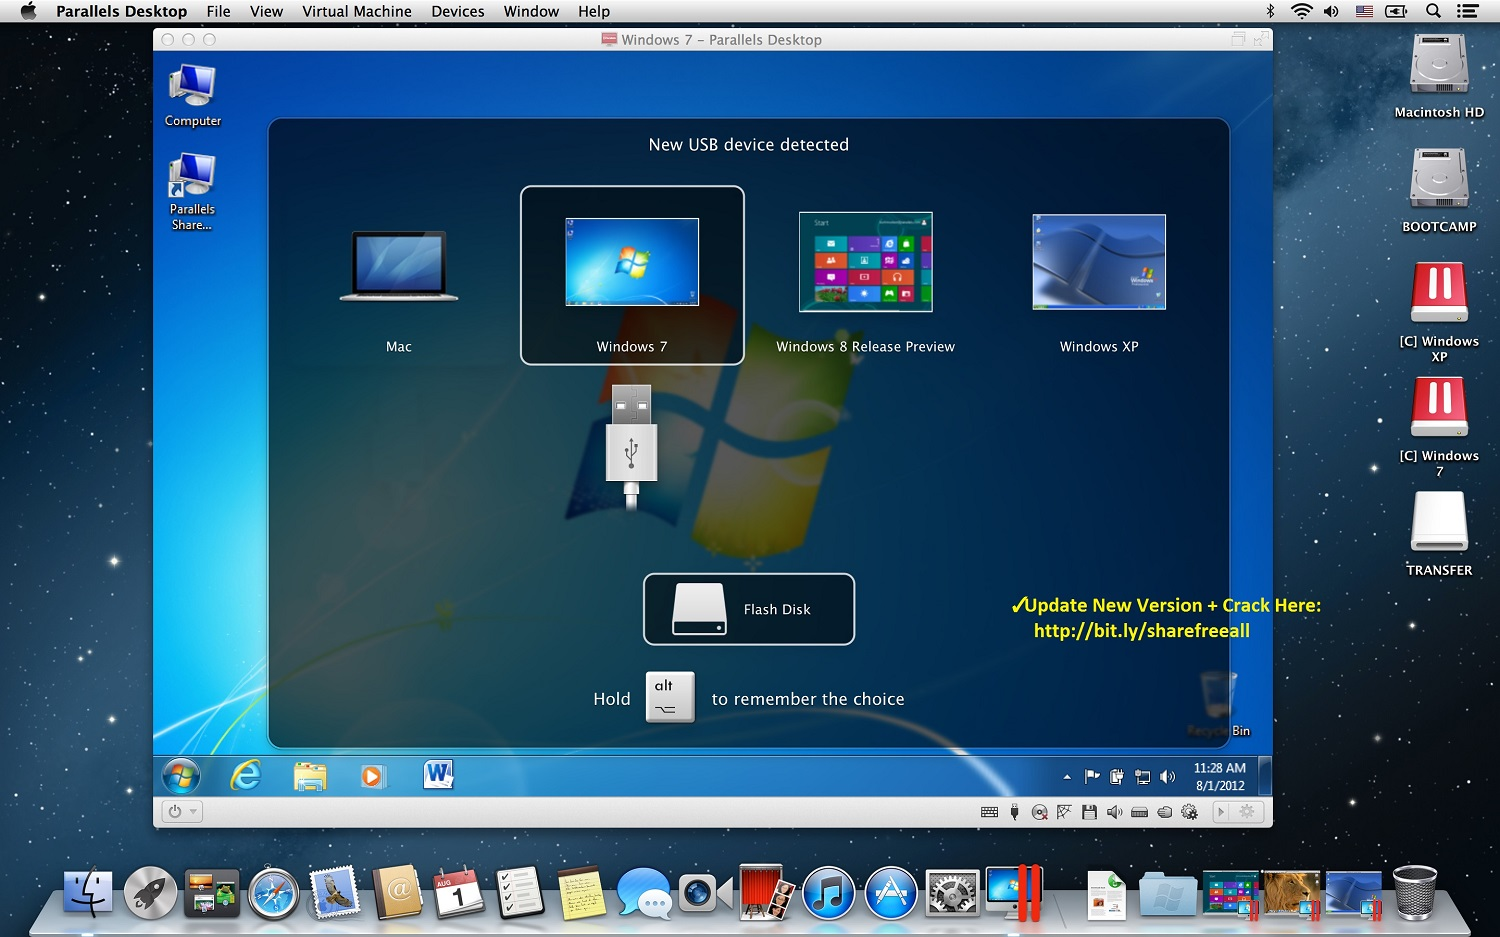 parallels desktop 7 serial number mac